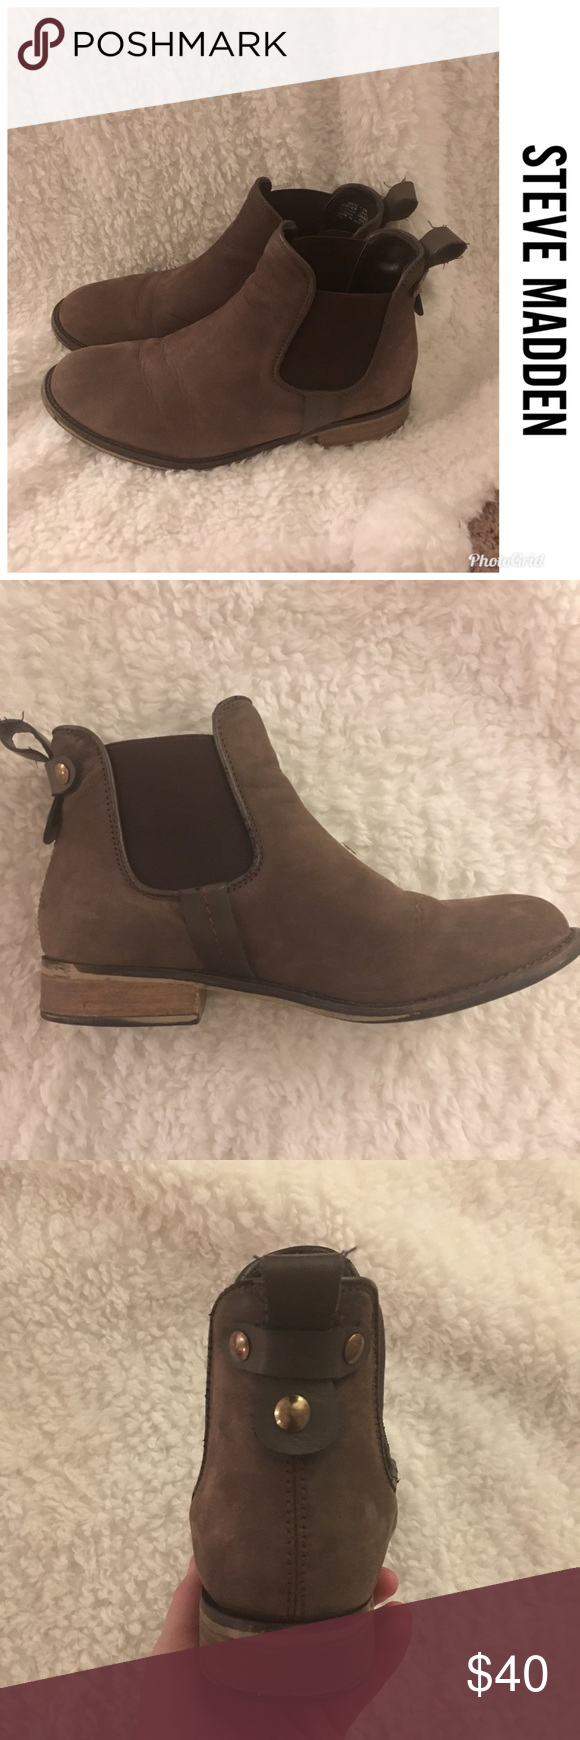 8d4ebdff39e Steve Madden Dover Chelsea Bootie Super cute booties Reposting because they  don t fit They re sized as a 7.5 but they fit closer to an 8!